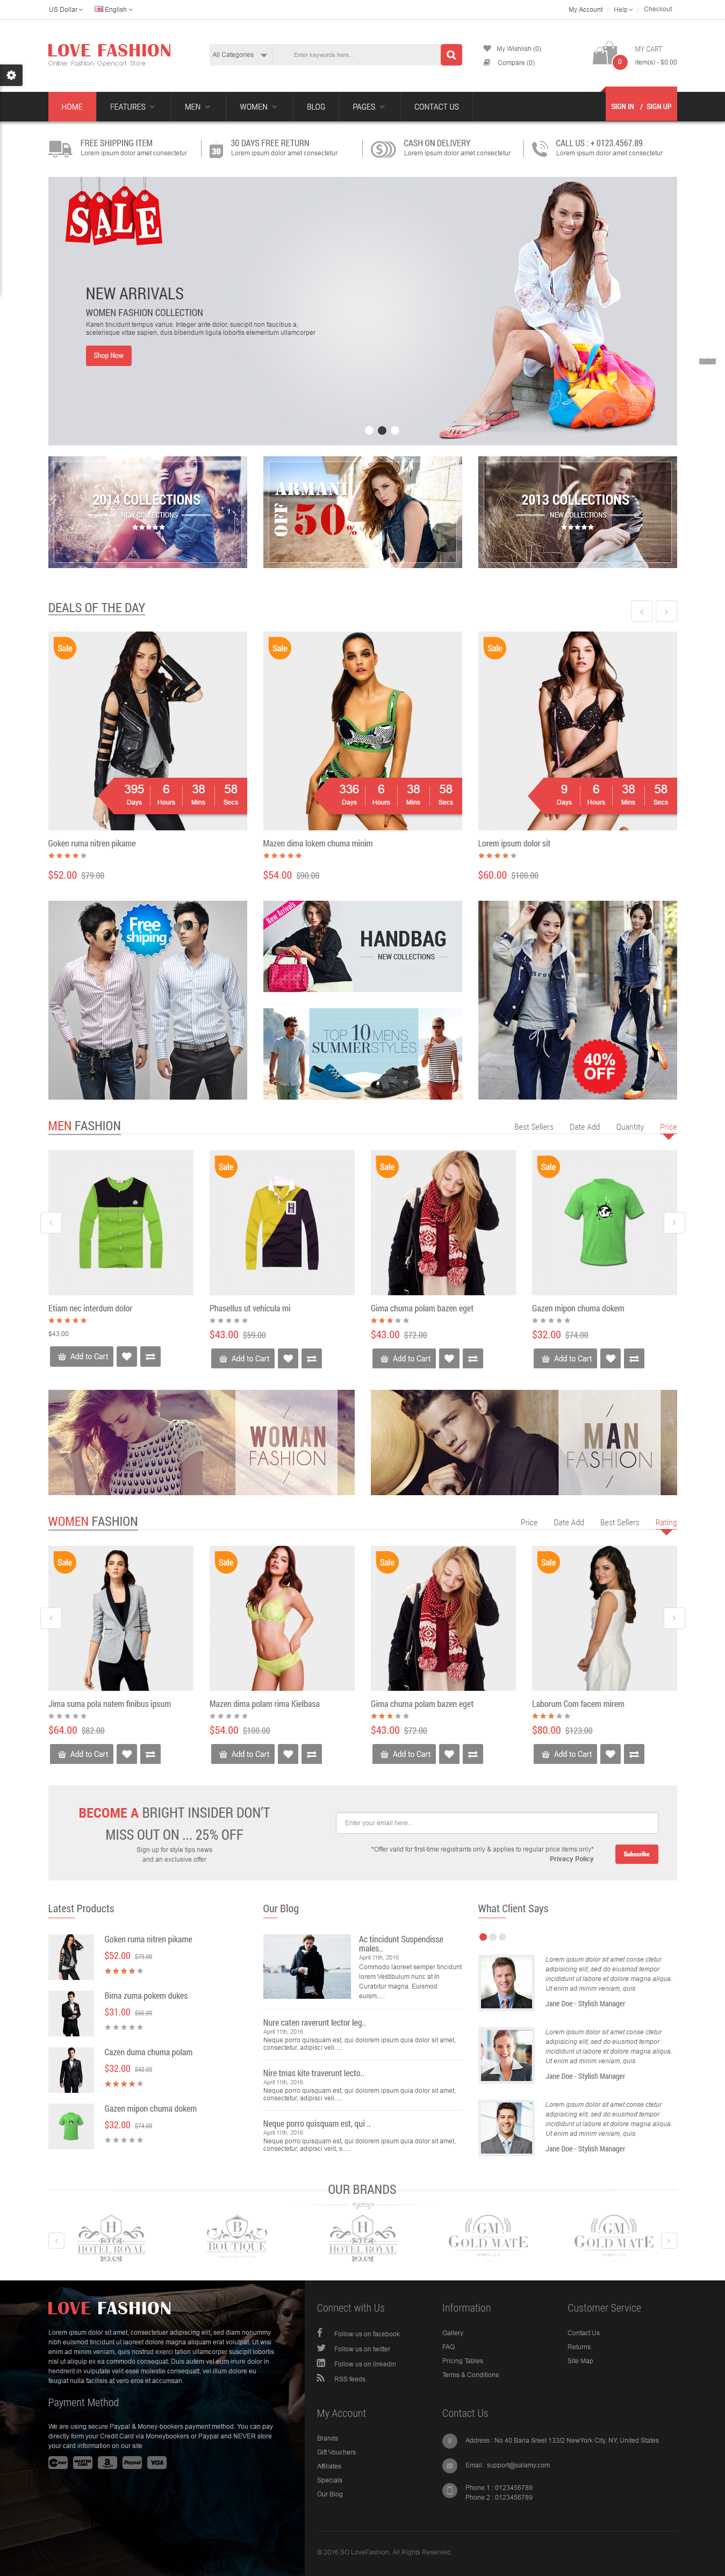 Musthaves & Fashion shop je online. - m 99